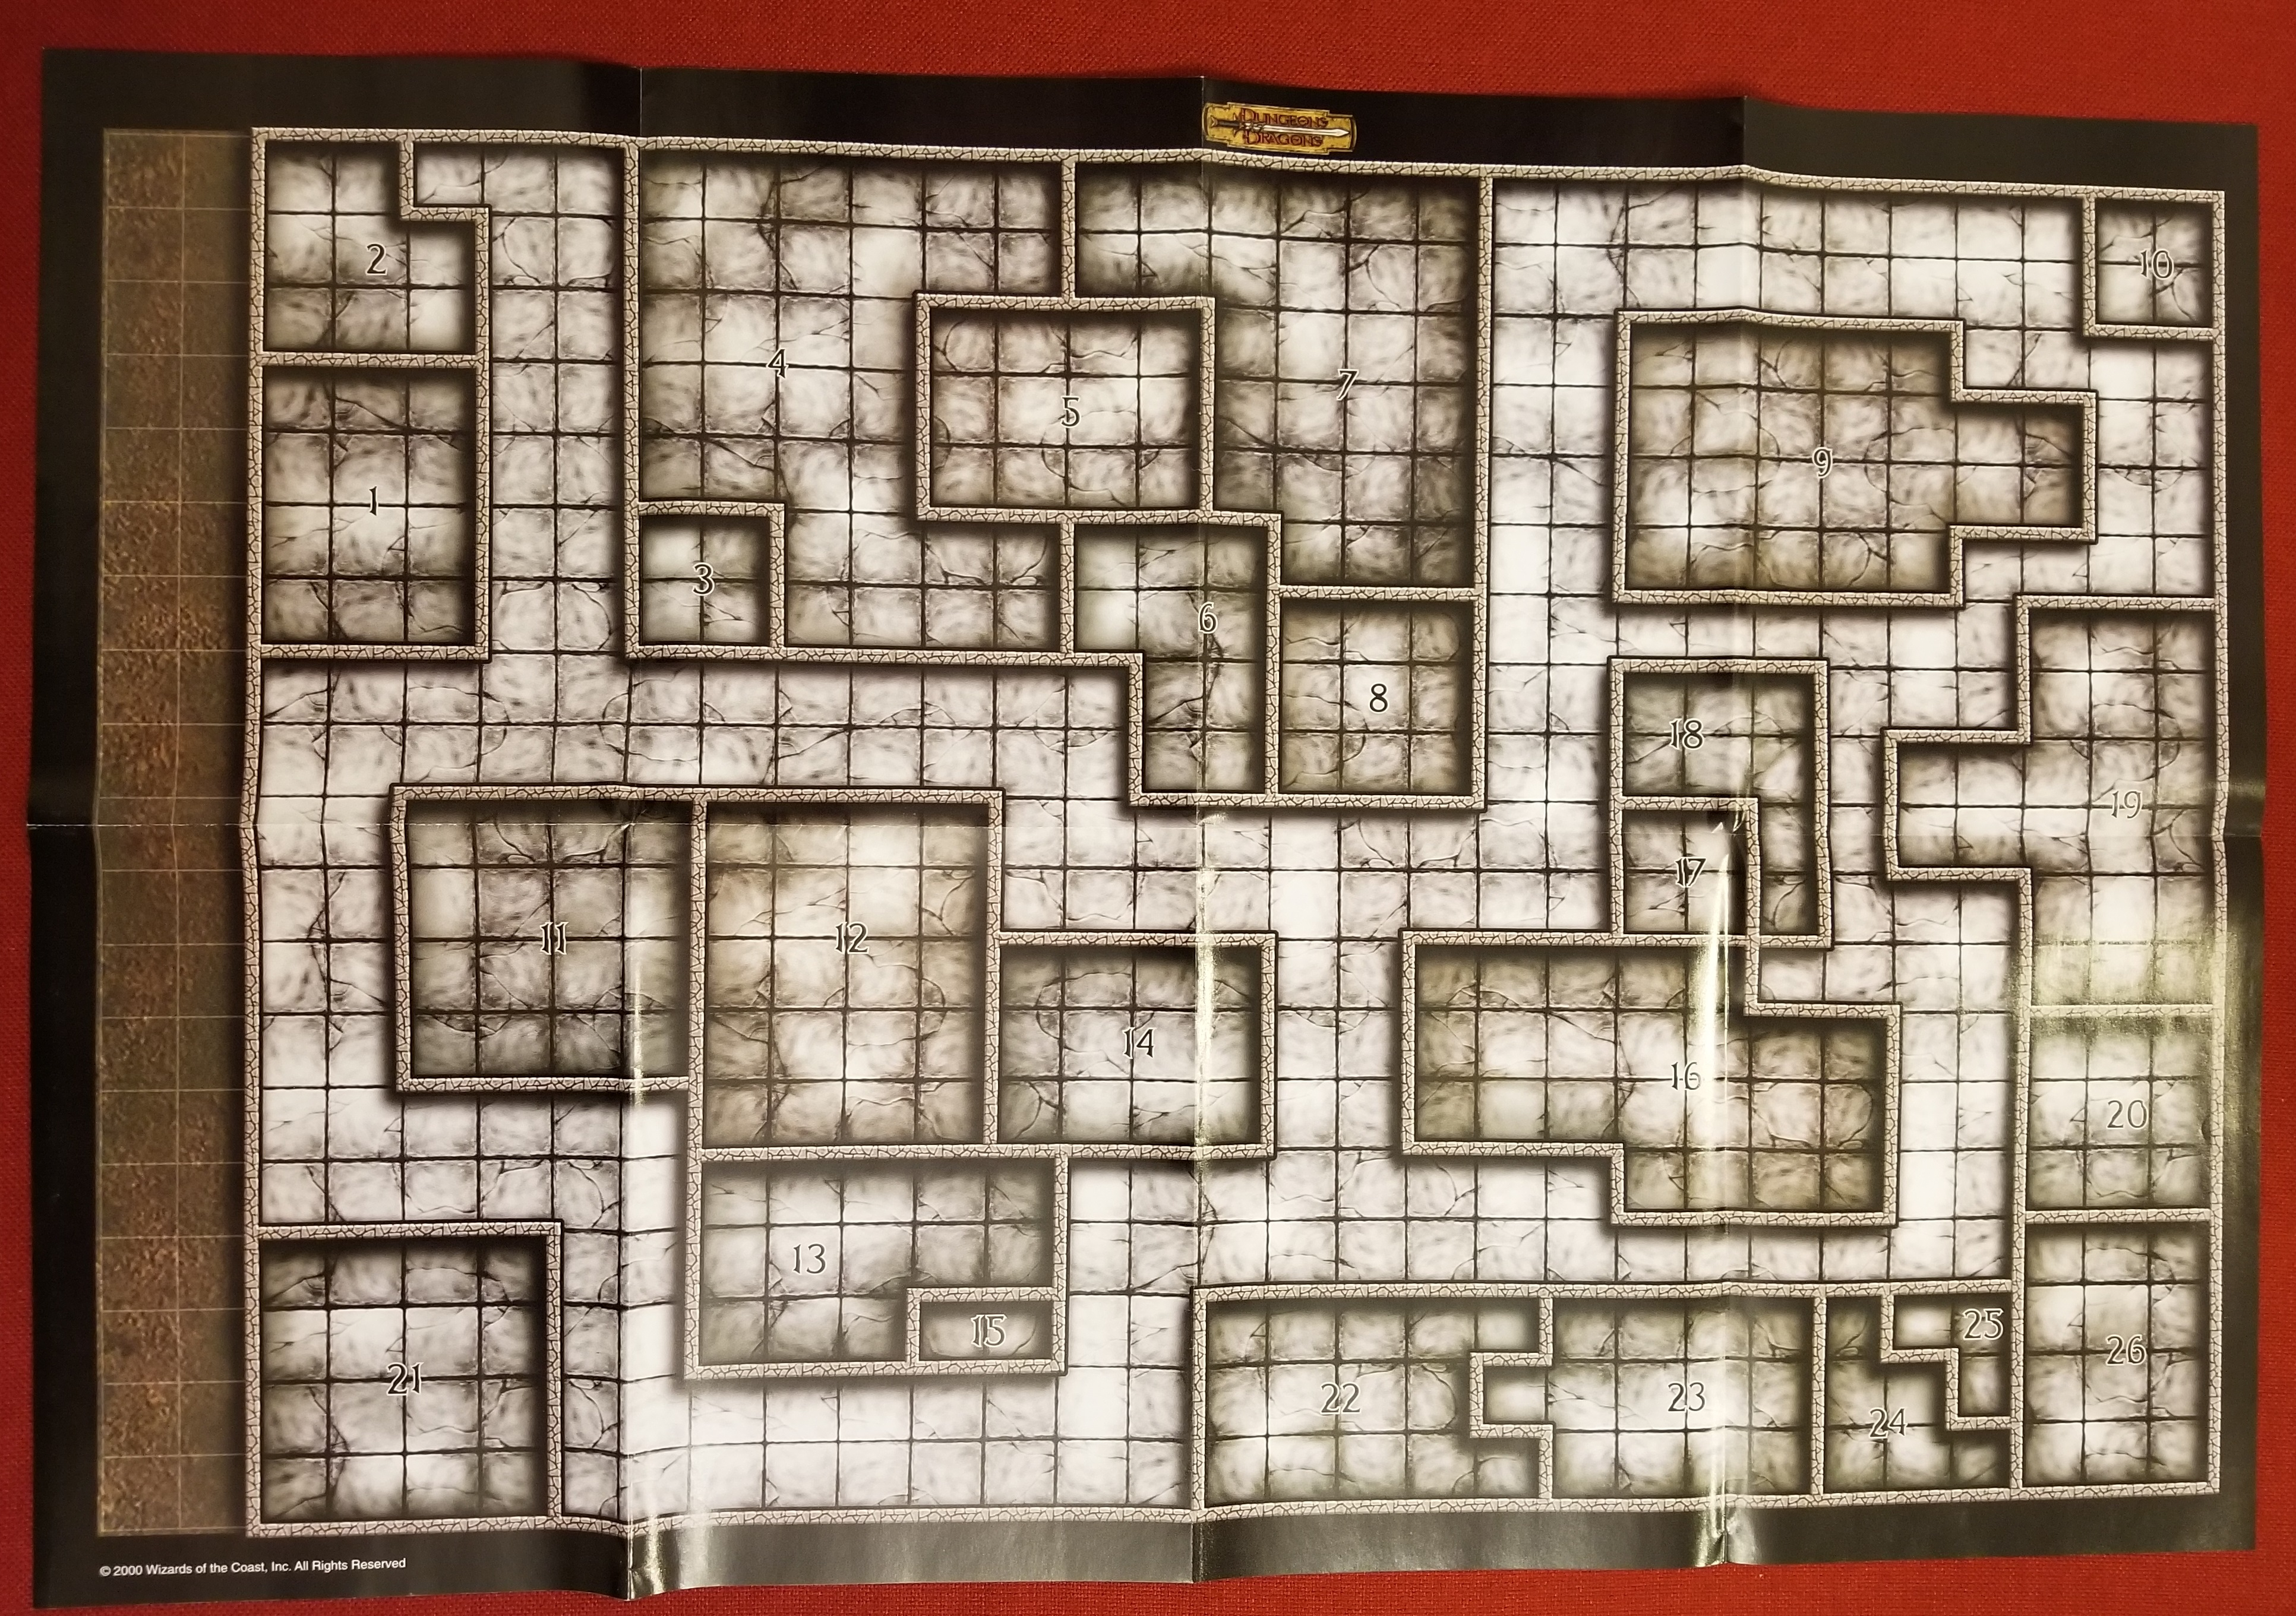 Dungeon Map.jpg